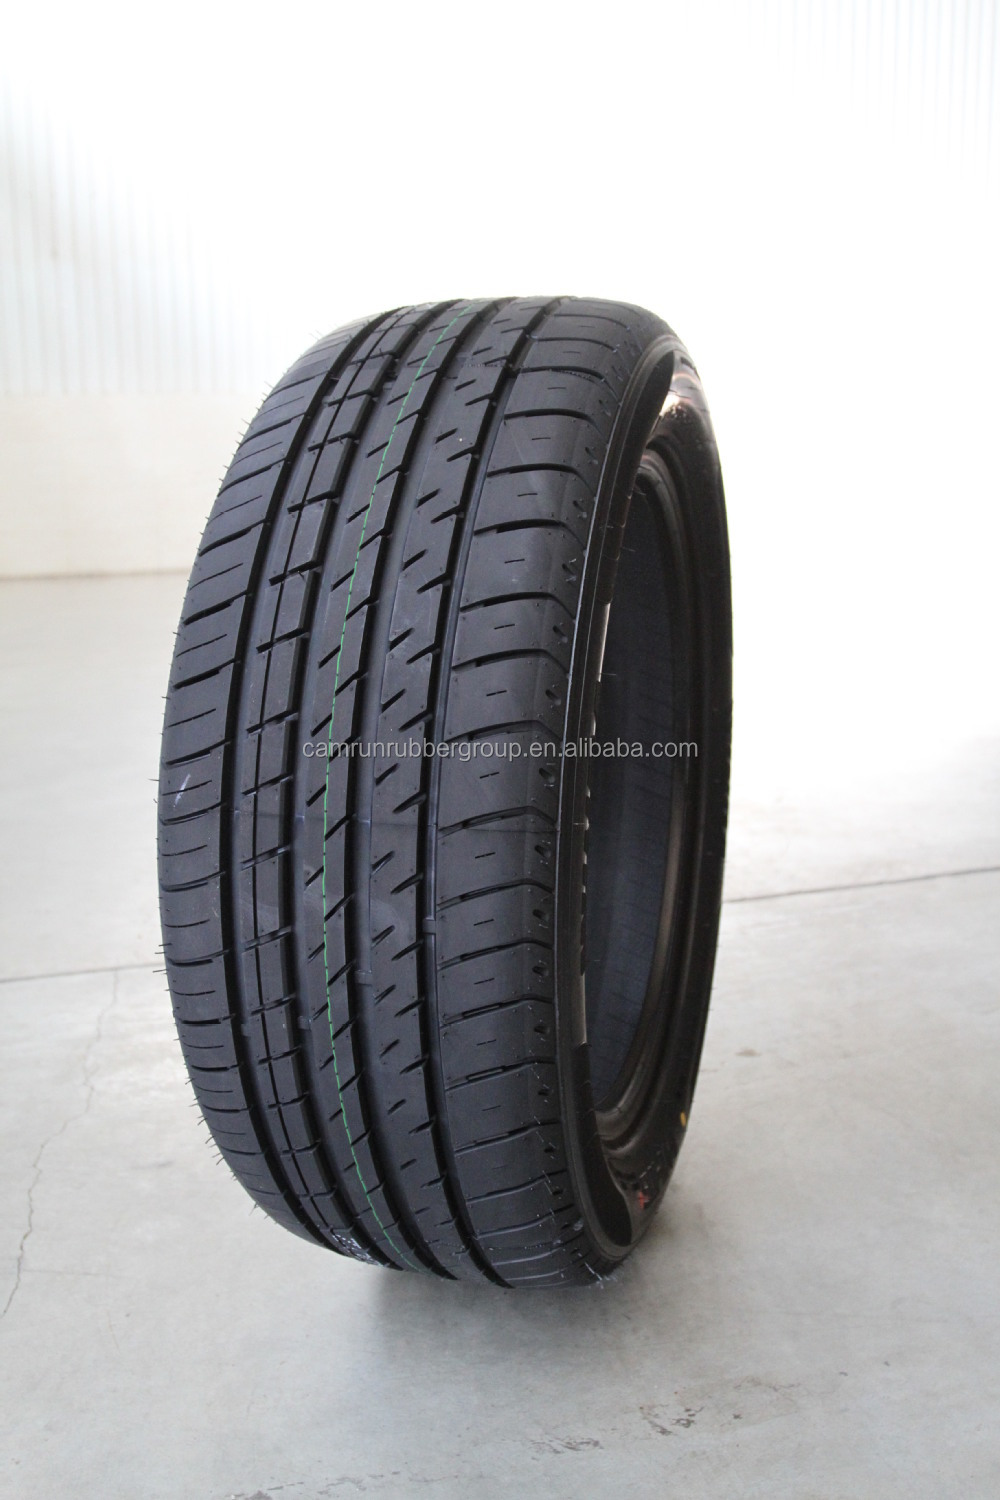 Car tires new 195R14C 195R15C CR101 Commerical Tyre